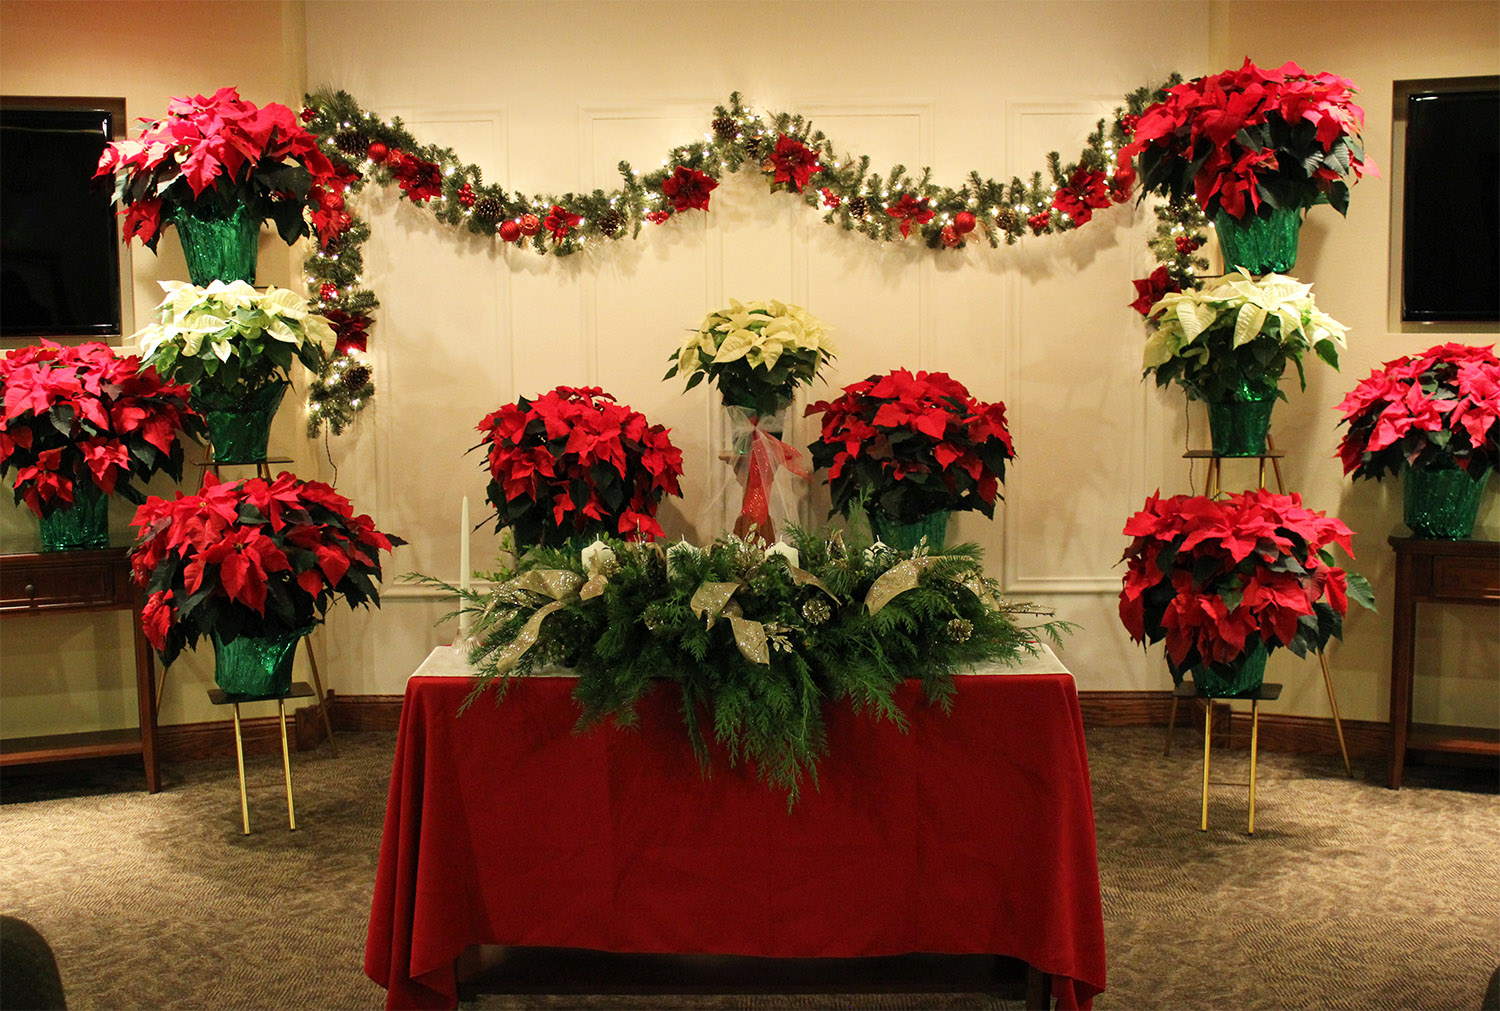 22 funeral homes making the holidays brighter for their communities david donehower funeral home izmirmasajfo